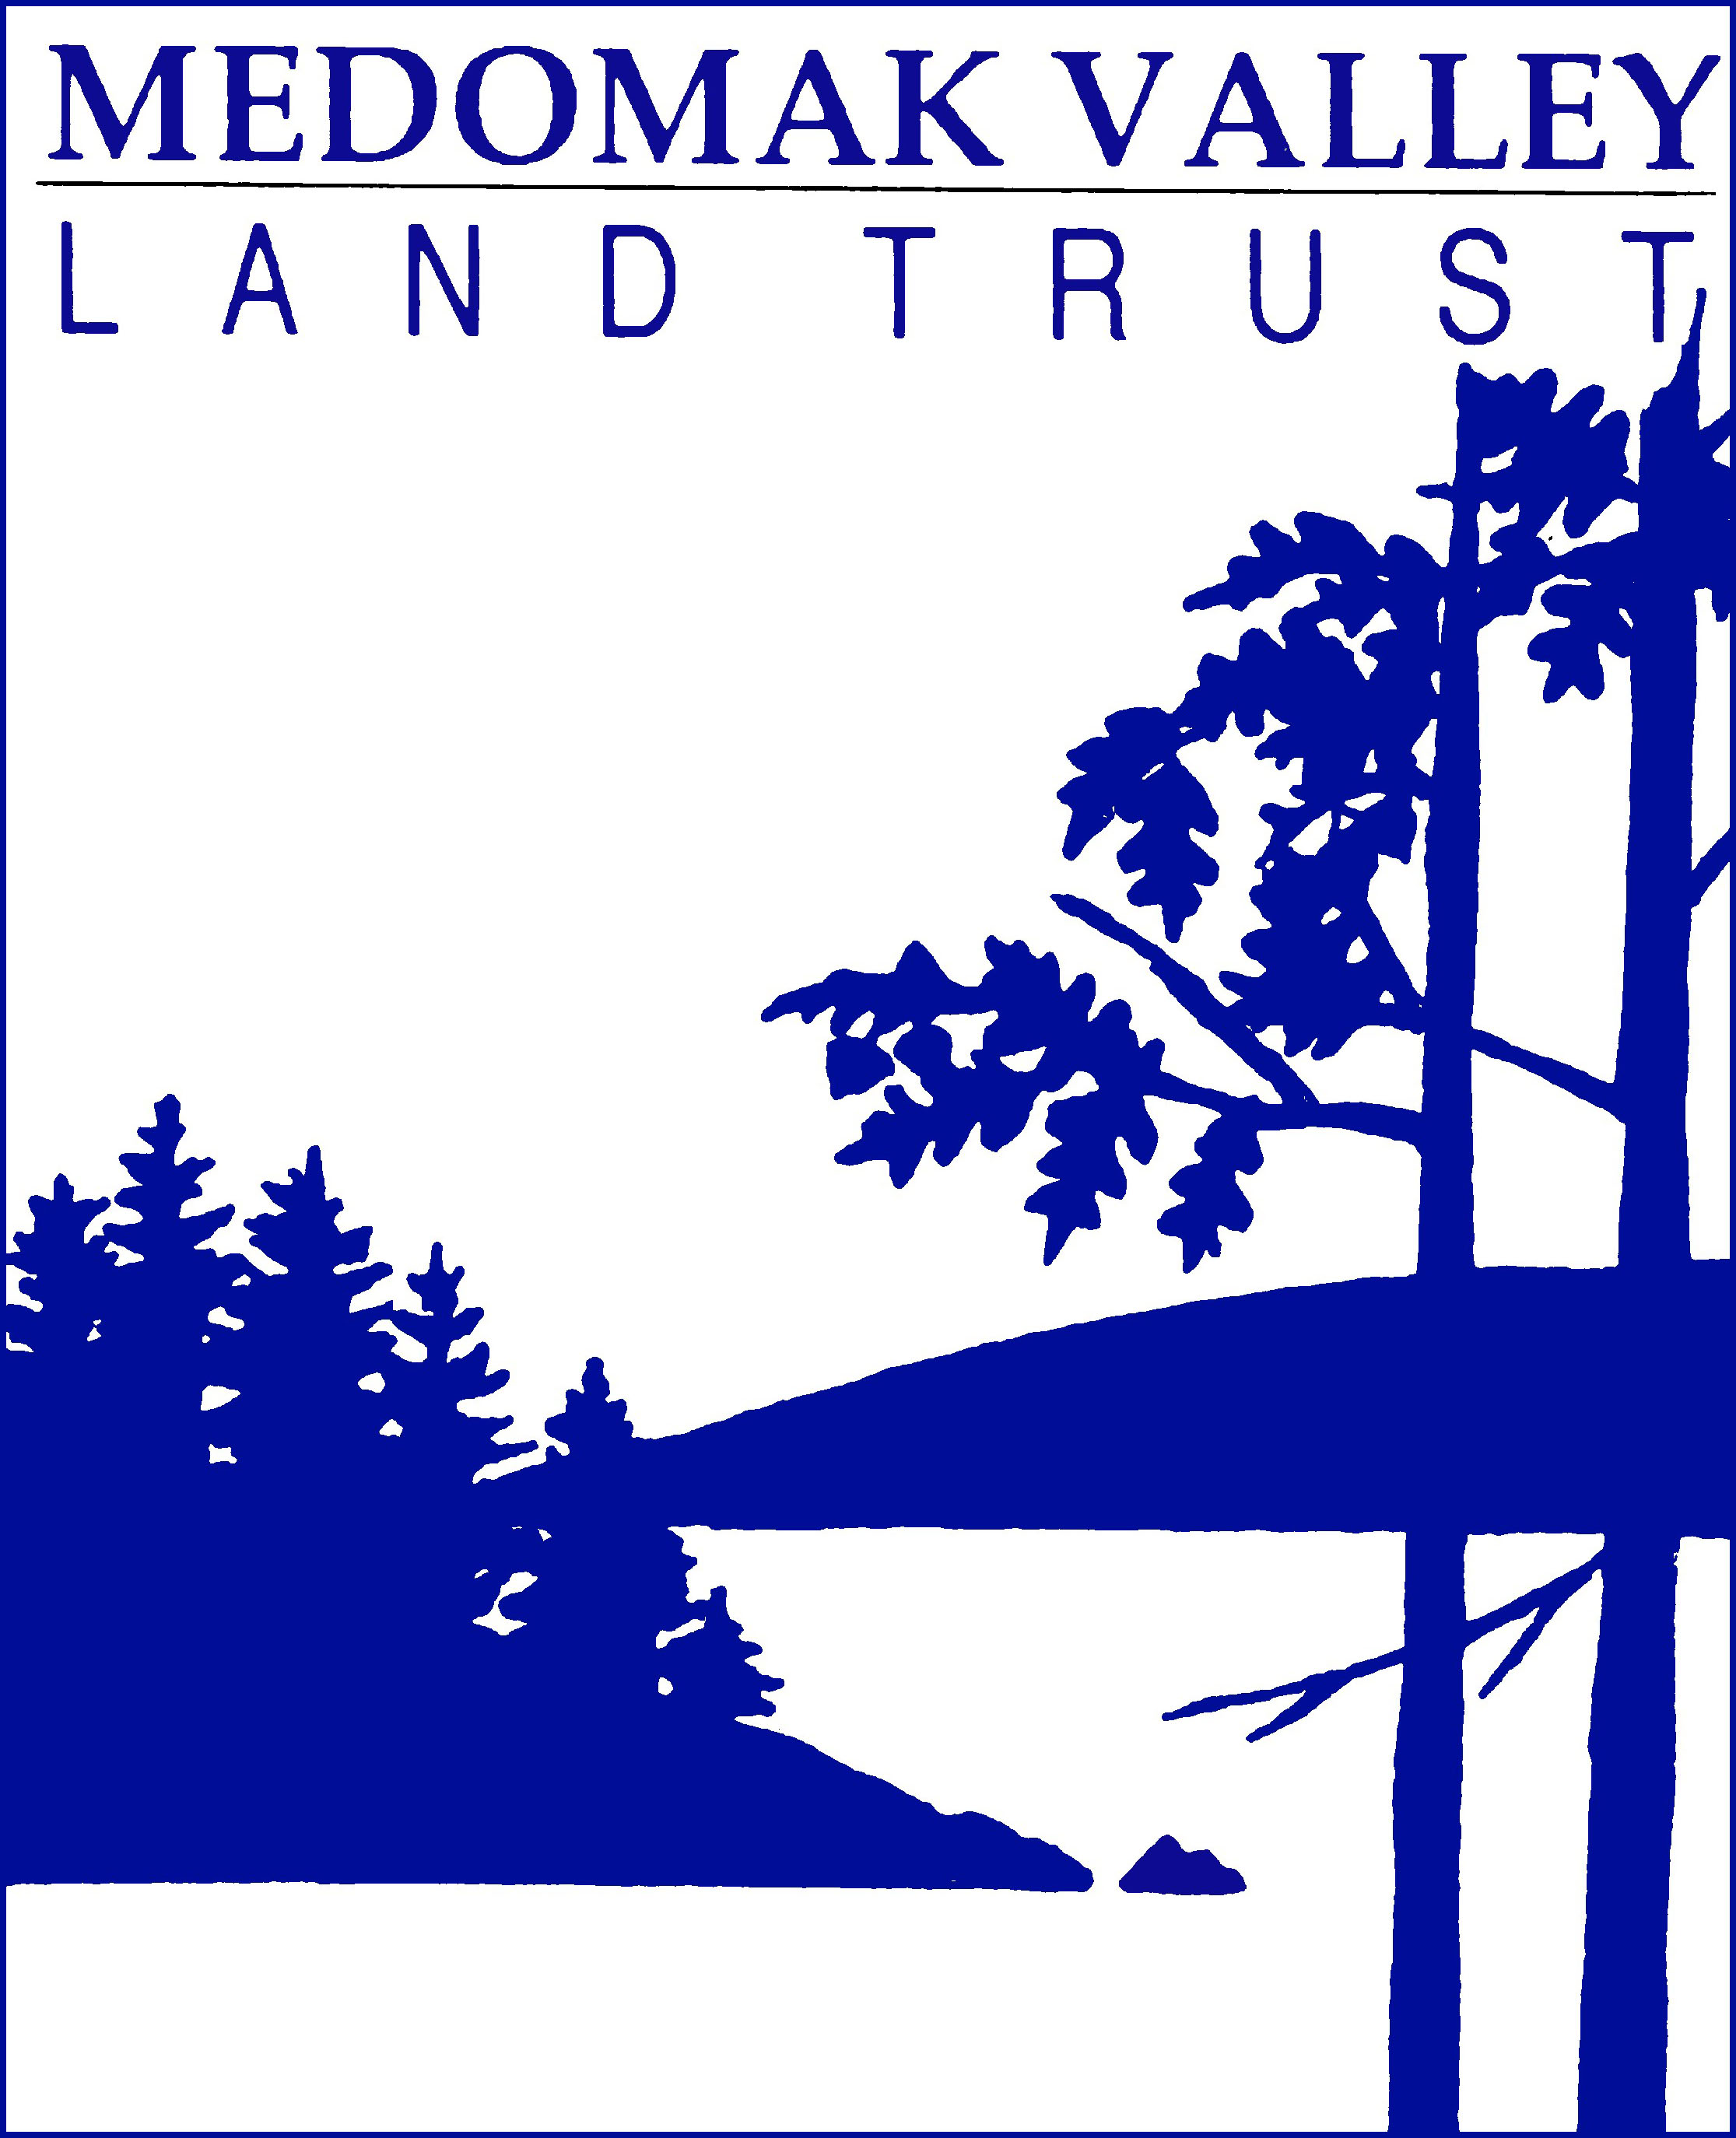 Medomak Valley Land Trust